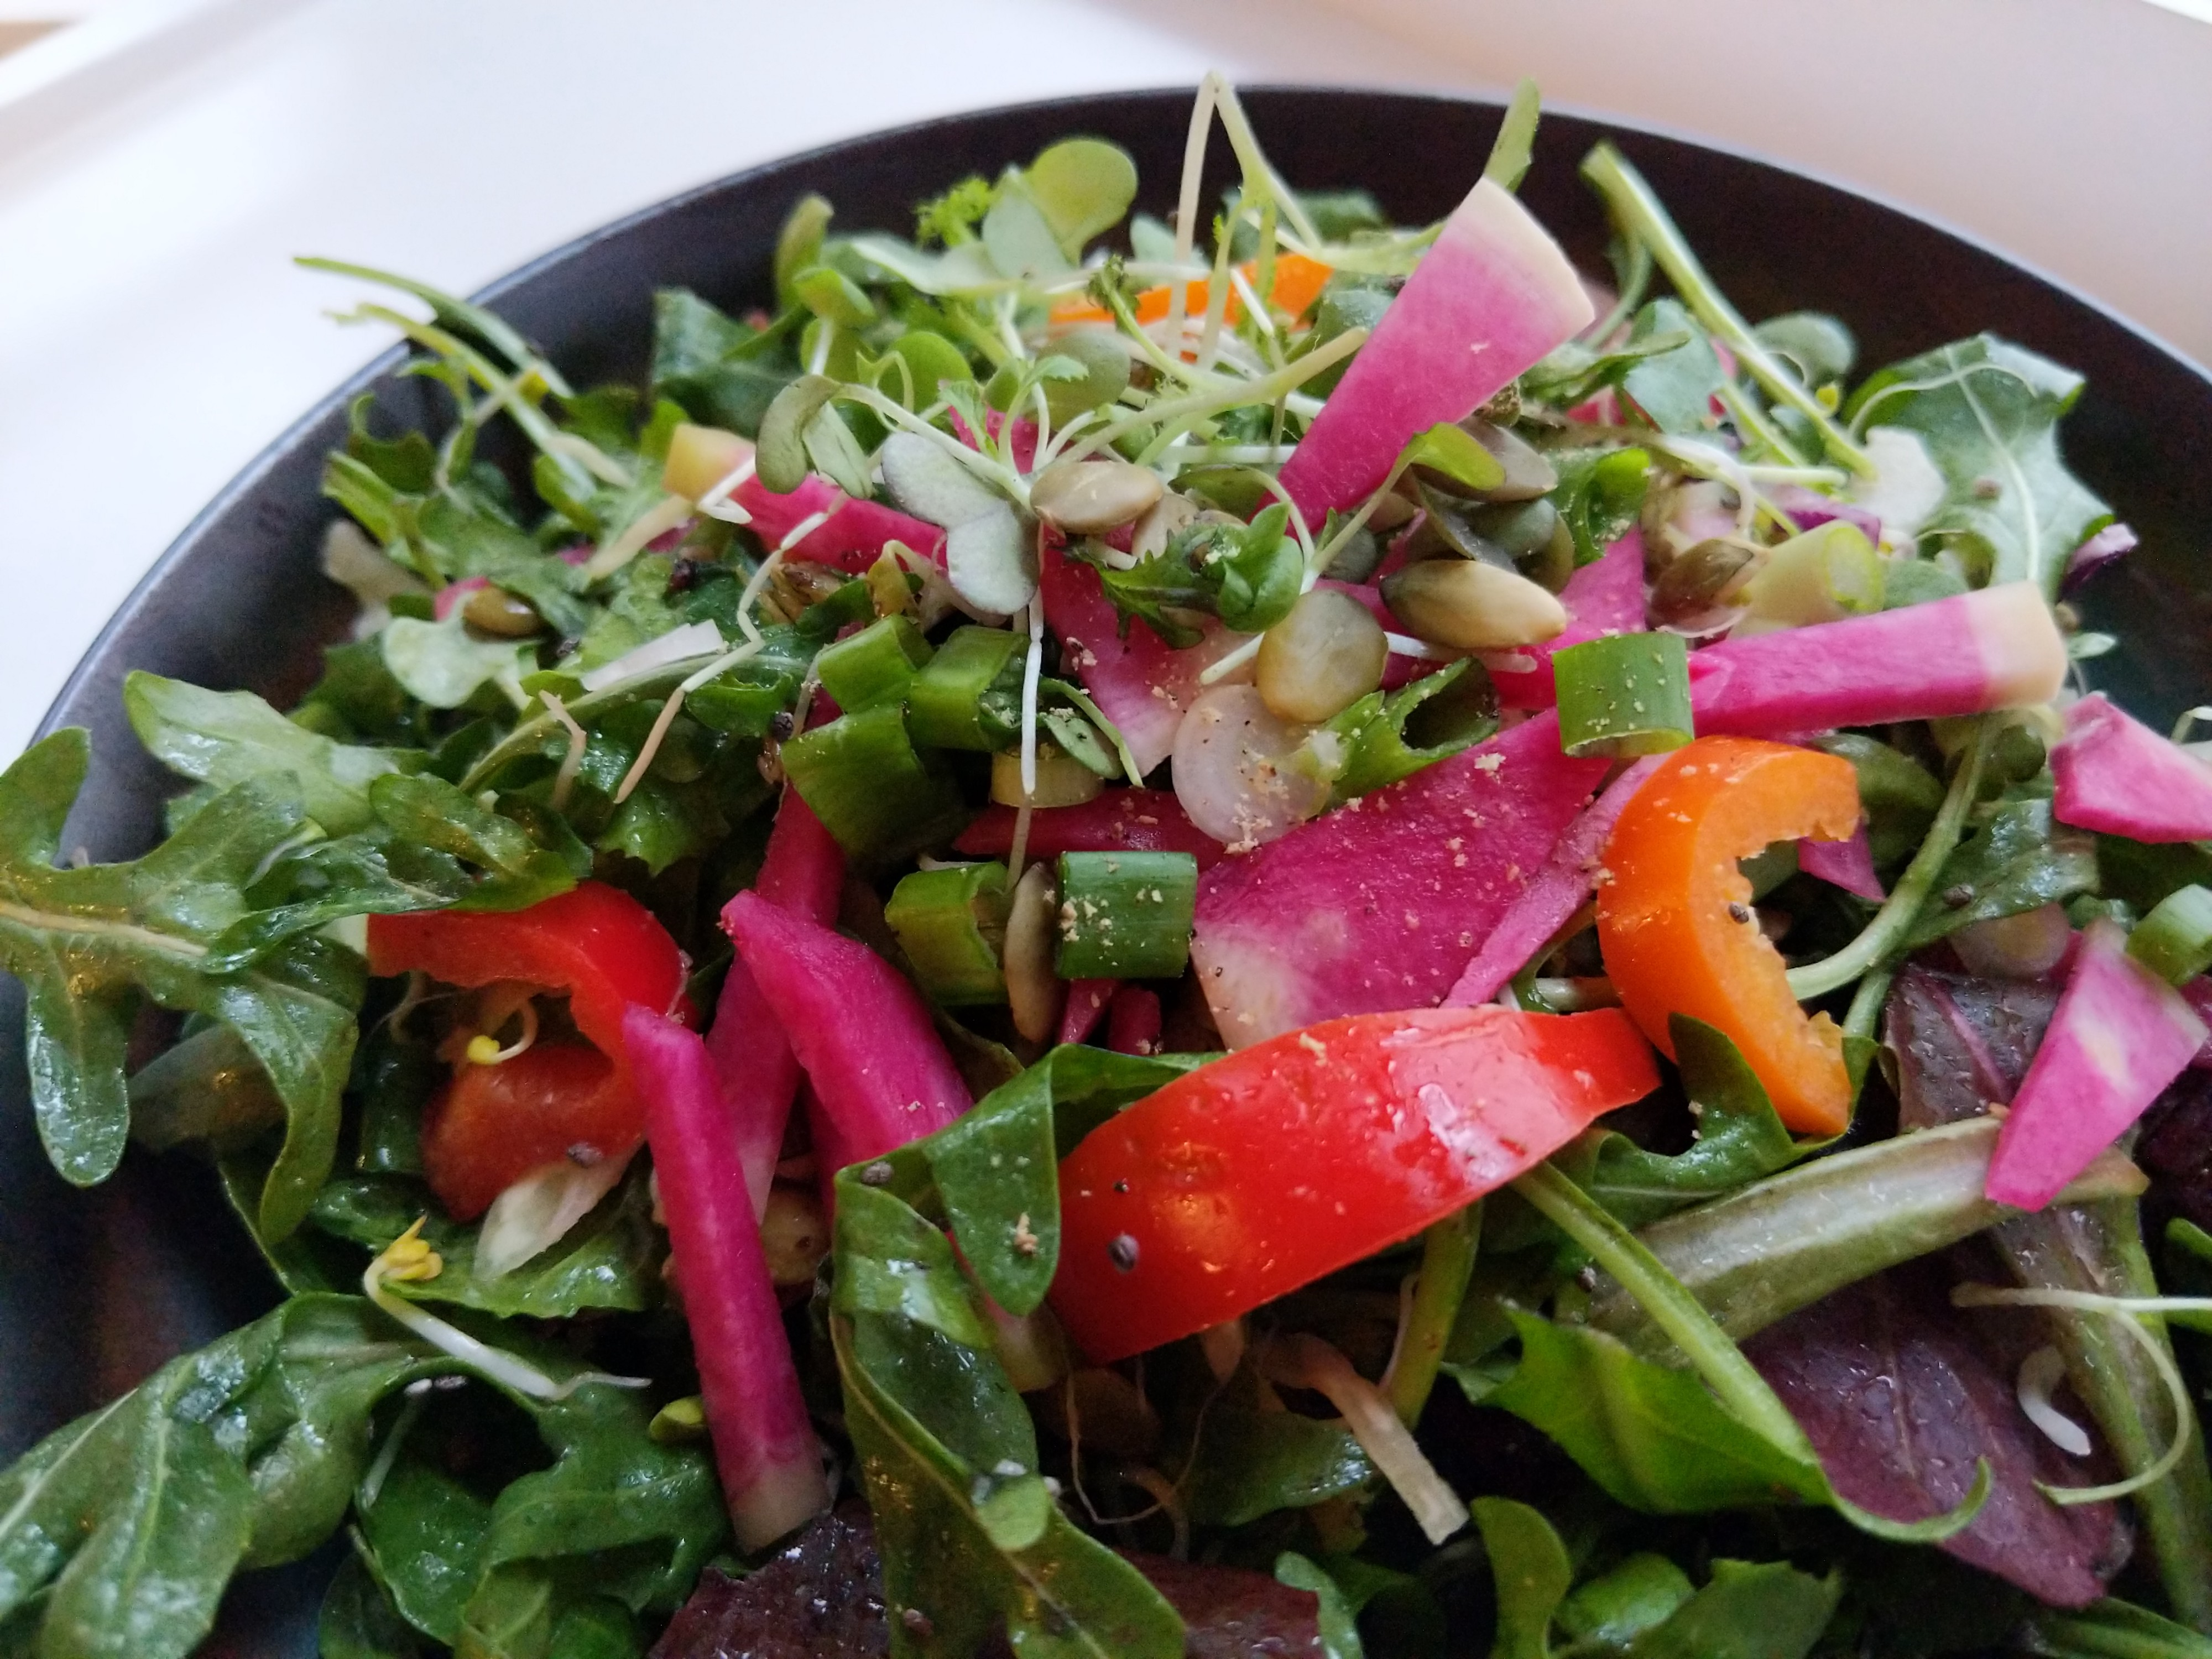 Bowl of fresh salad including arugula, sweet bell peppers, watermelon radish, pumpkin seeds, green onions, and microgreens.